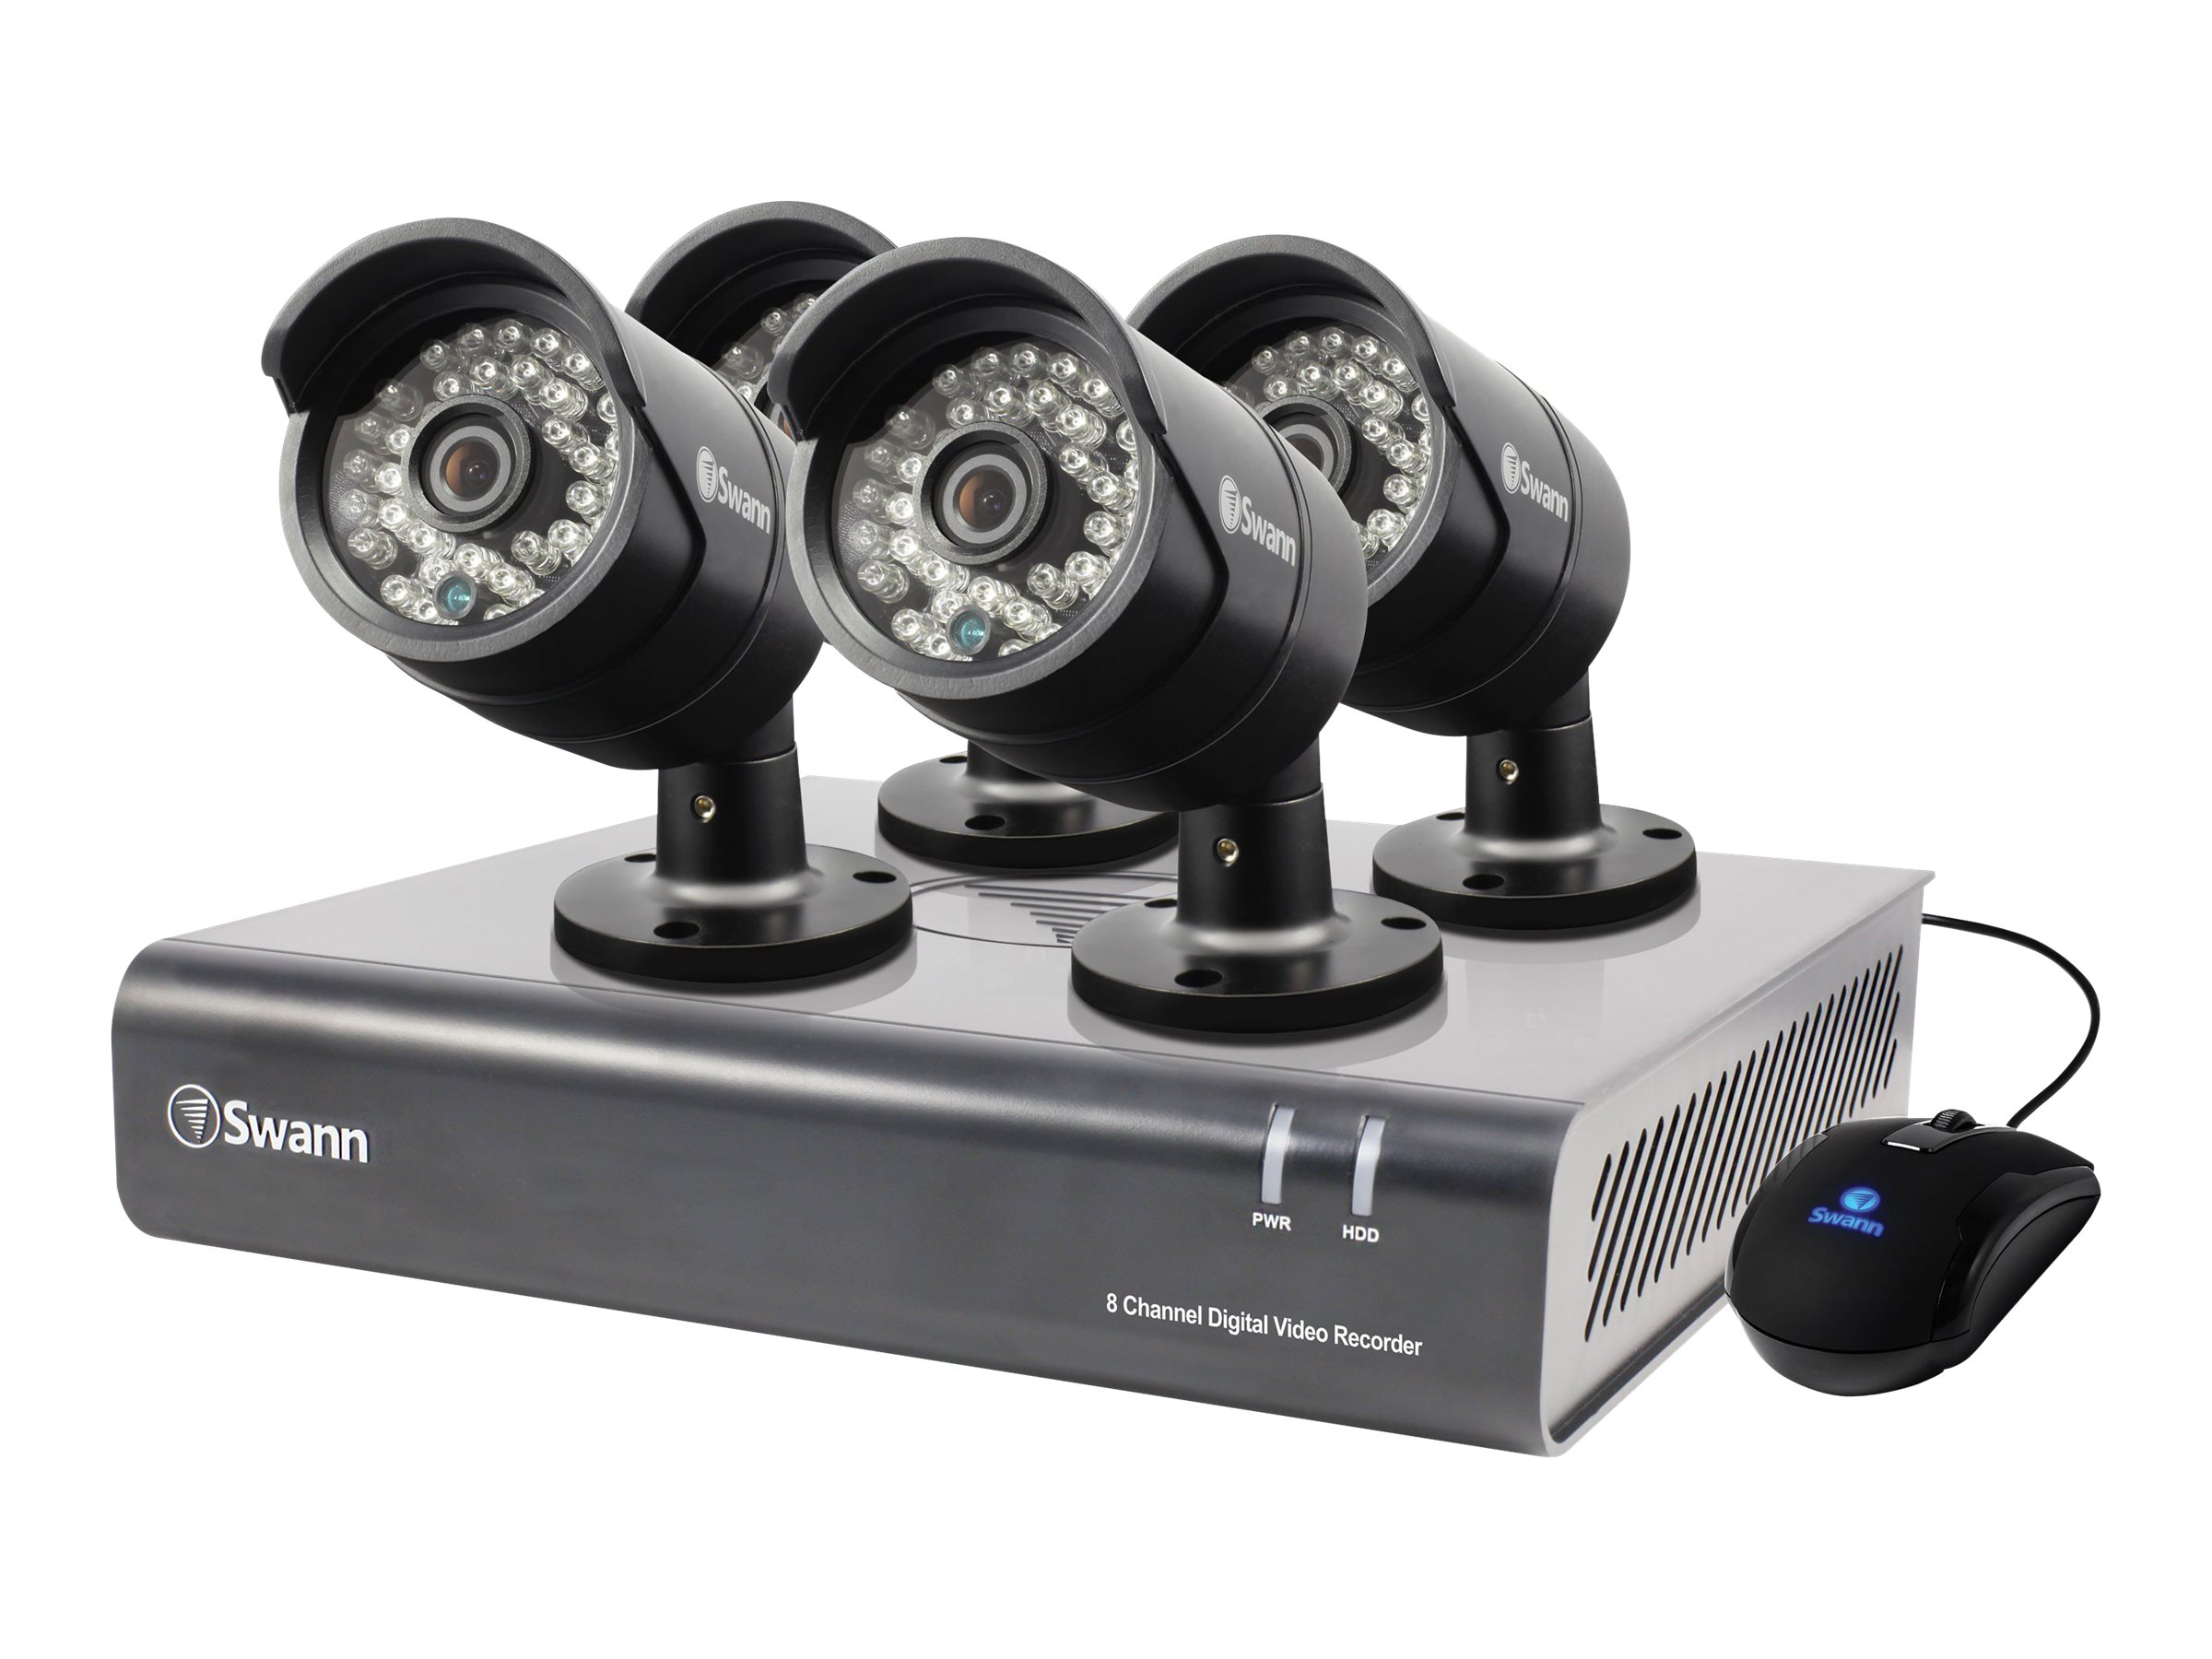 Swann 8-Channel 720p Digital Video Recorder with 1TB HDD, 4x PRO-A850 Cameras